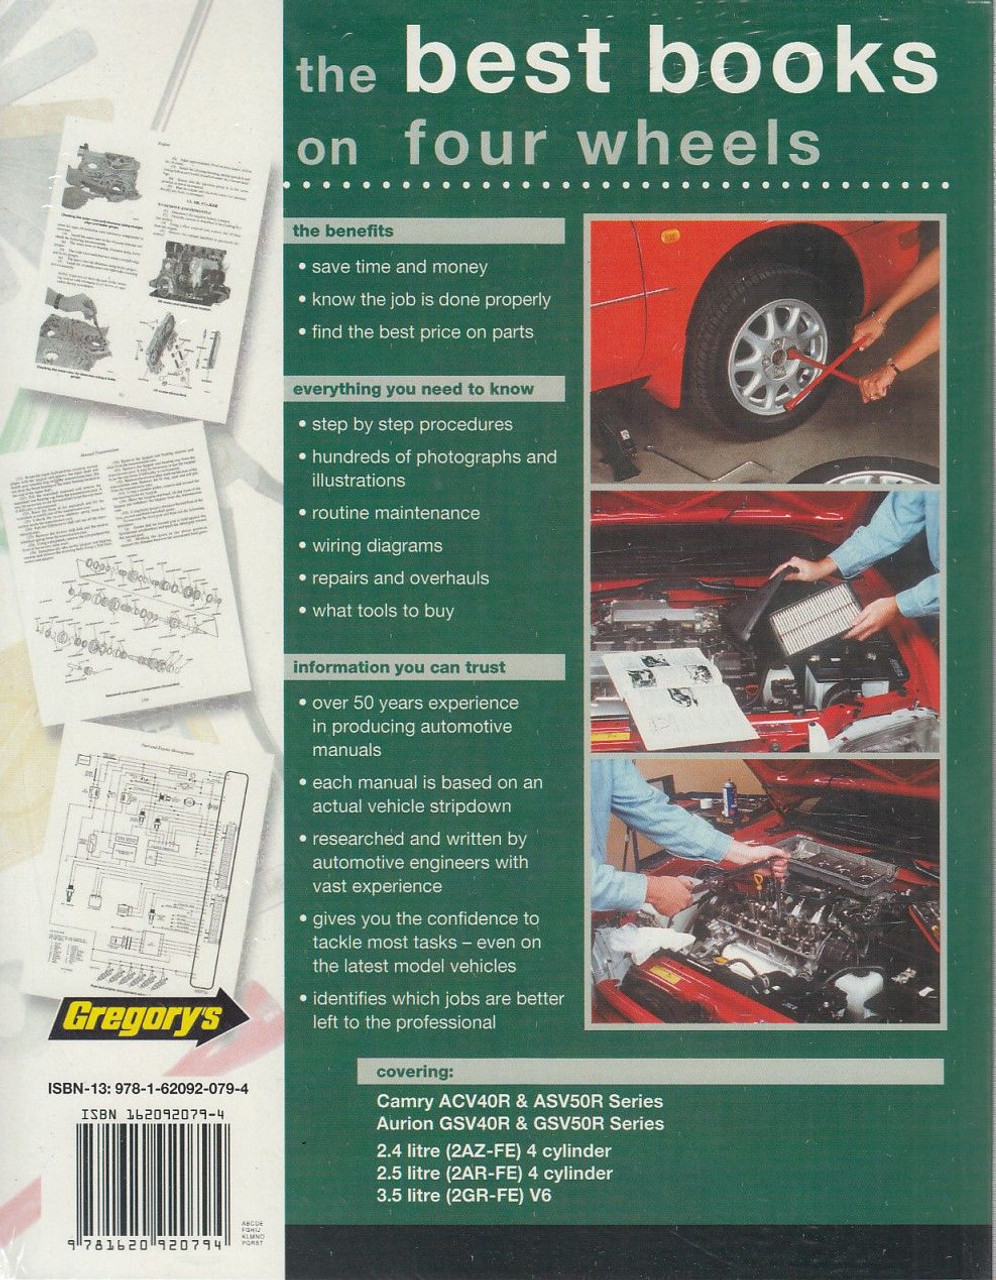 Toyota Camry 24 25 Litre Aurion 35 V6 2006 2013 1992 Electrical Wiring Diagram Guide Handbook Manual Back Cover